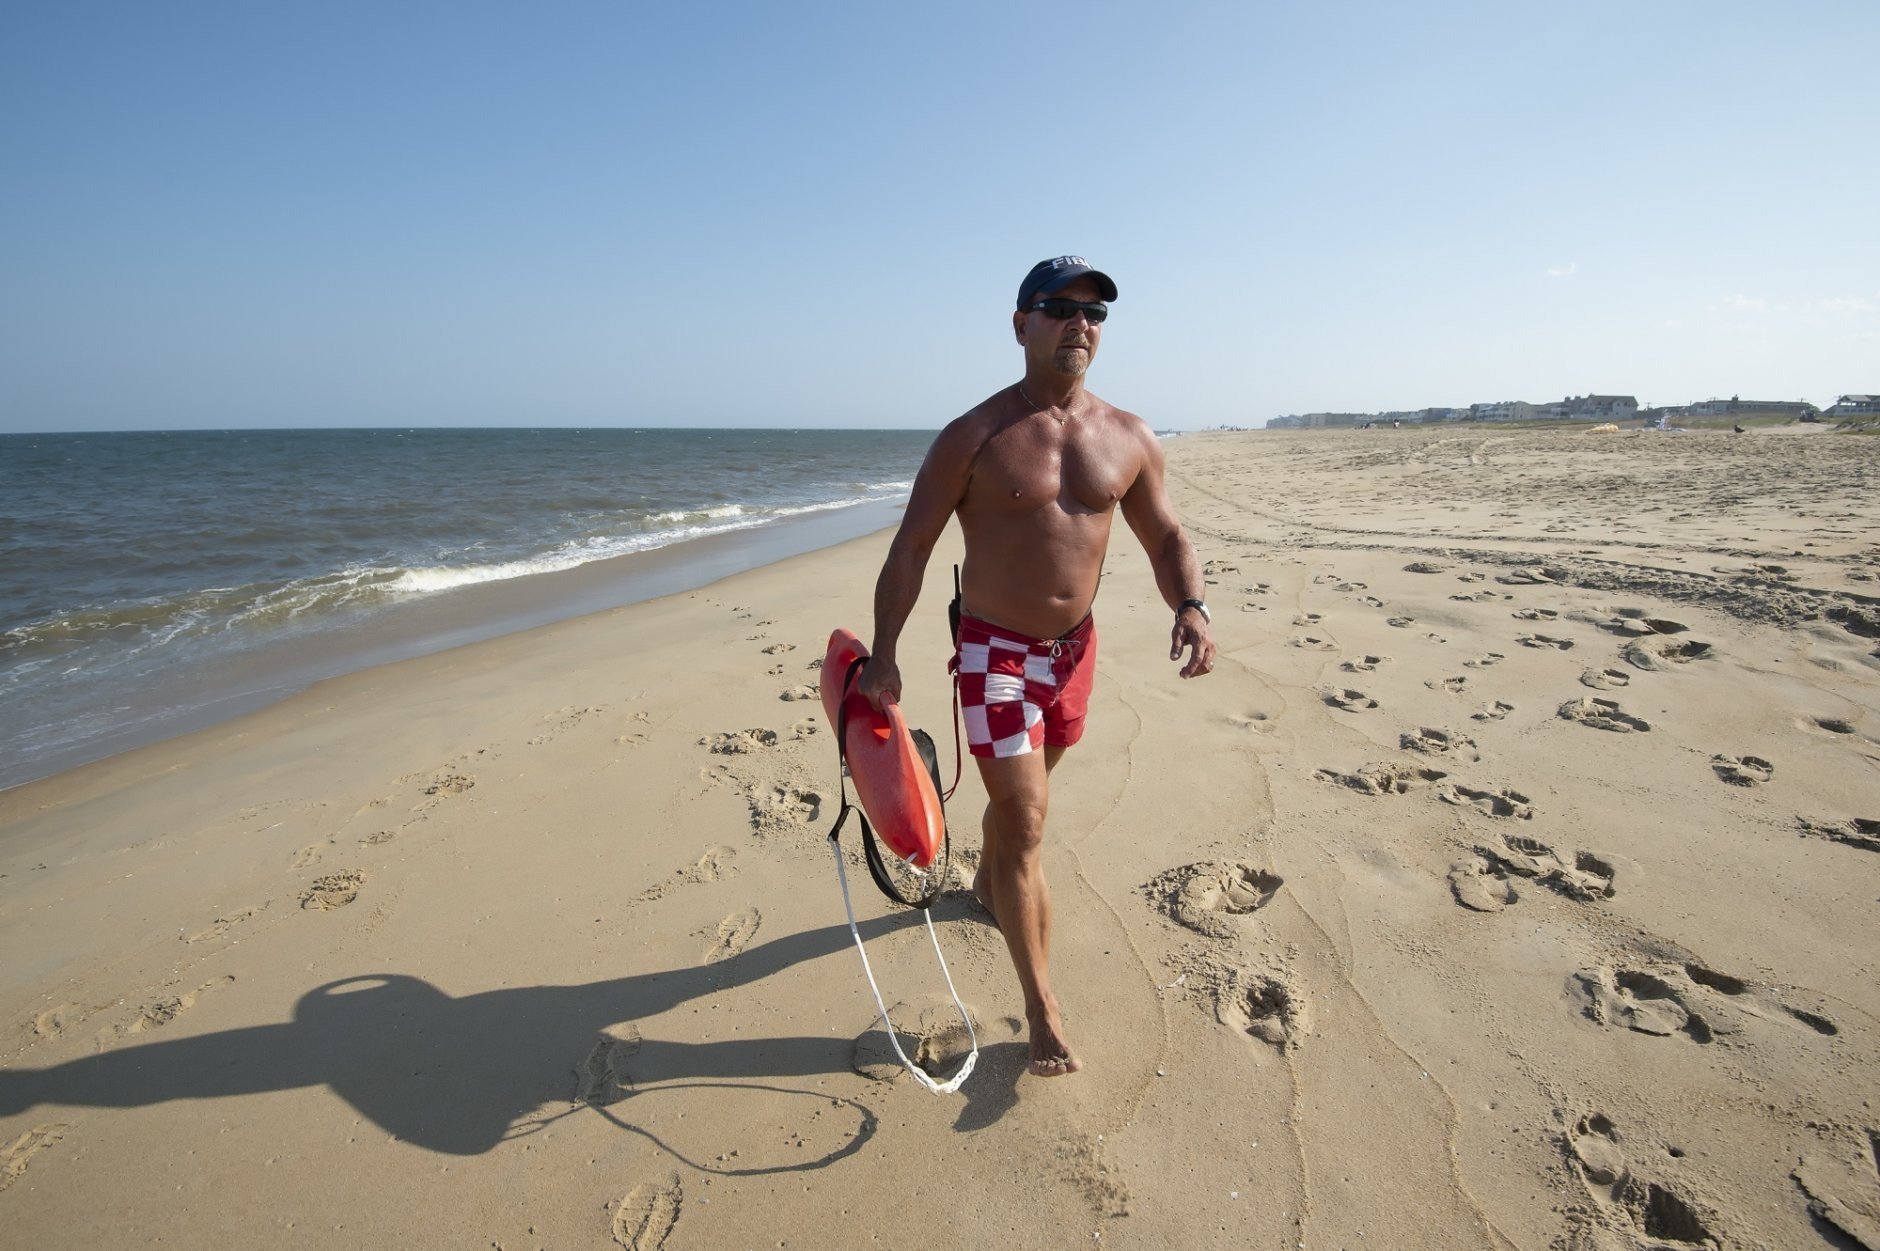 In this Aug. 30, 2018 photo, Fenwick Island Beach Patrol Capt. Tim Ferry walks along the beach in Fenwick Island, Del. The buff high school guidance counselor has been manning the shoreline since 1976, saving lives in between winning medals at international lifeguard competitions and literally writing the handbook on beach safety. (Jason Minto/The News Journal via AP)